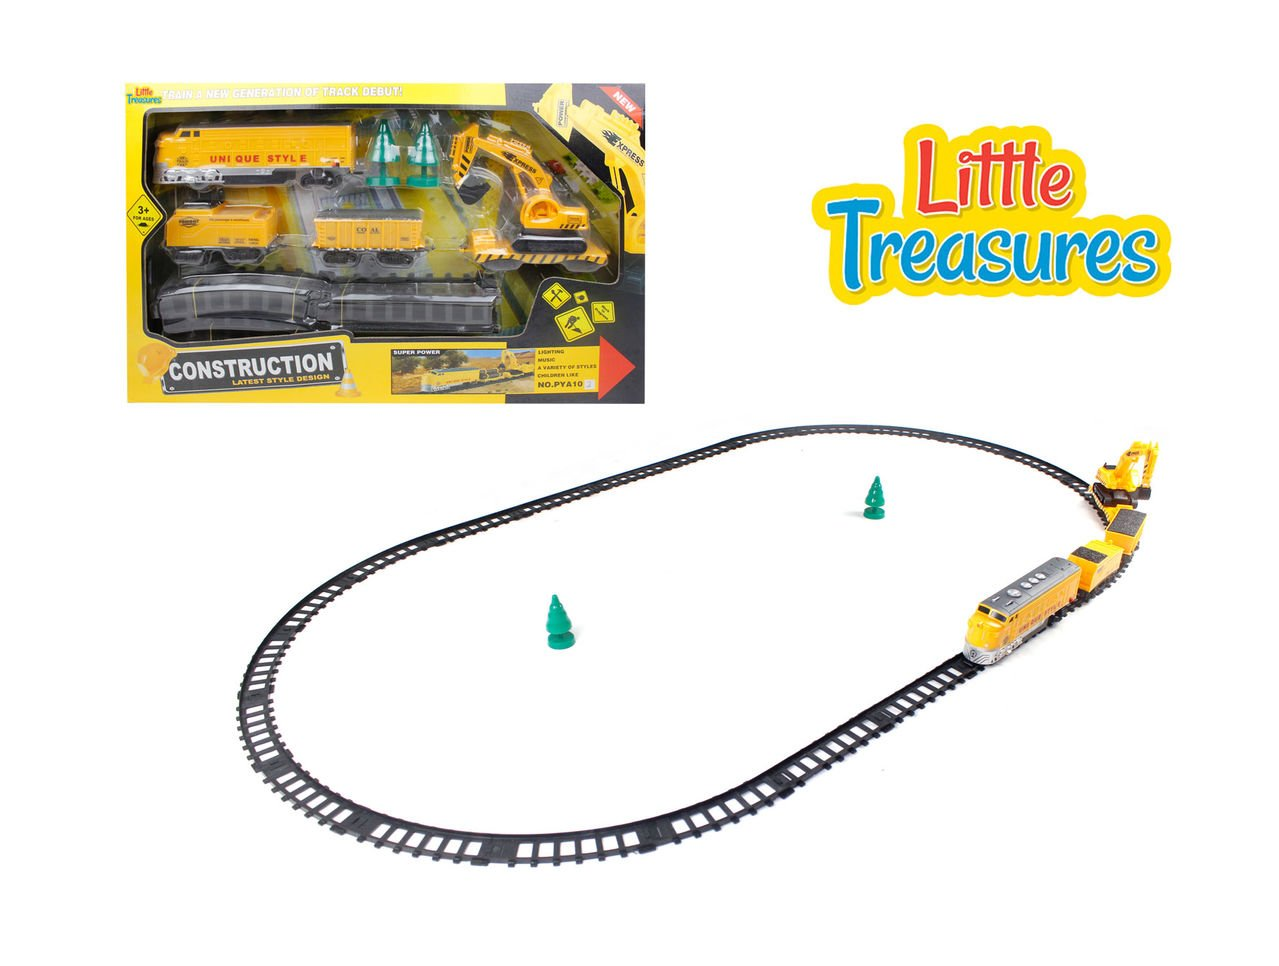 Train Tracks Engineering Fixer Man Set - drive down this construction train set and fix all the tracks while you drive down the line - fun toy for kids ages 3+